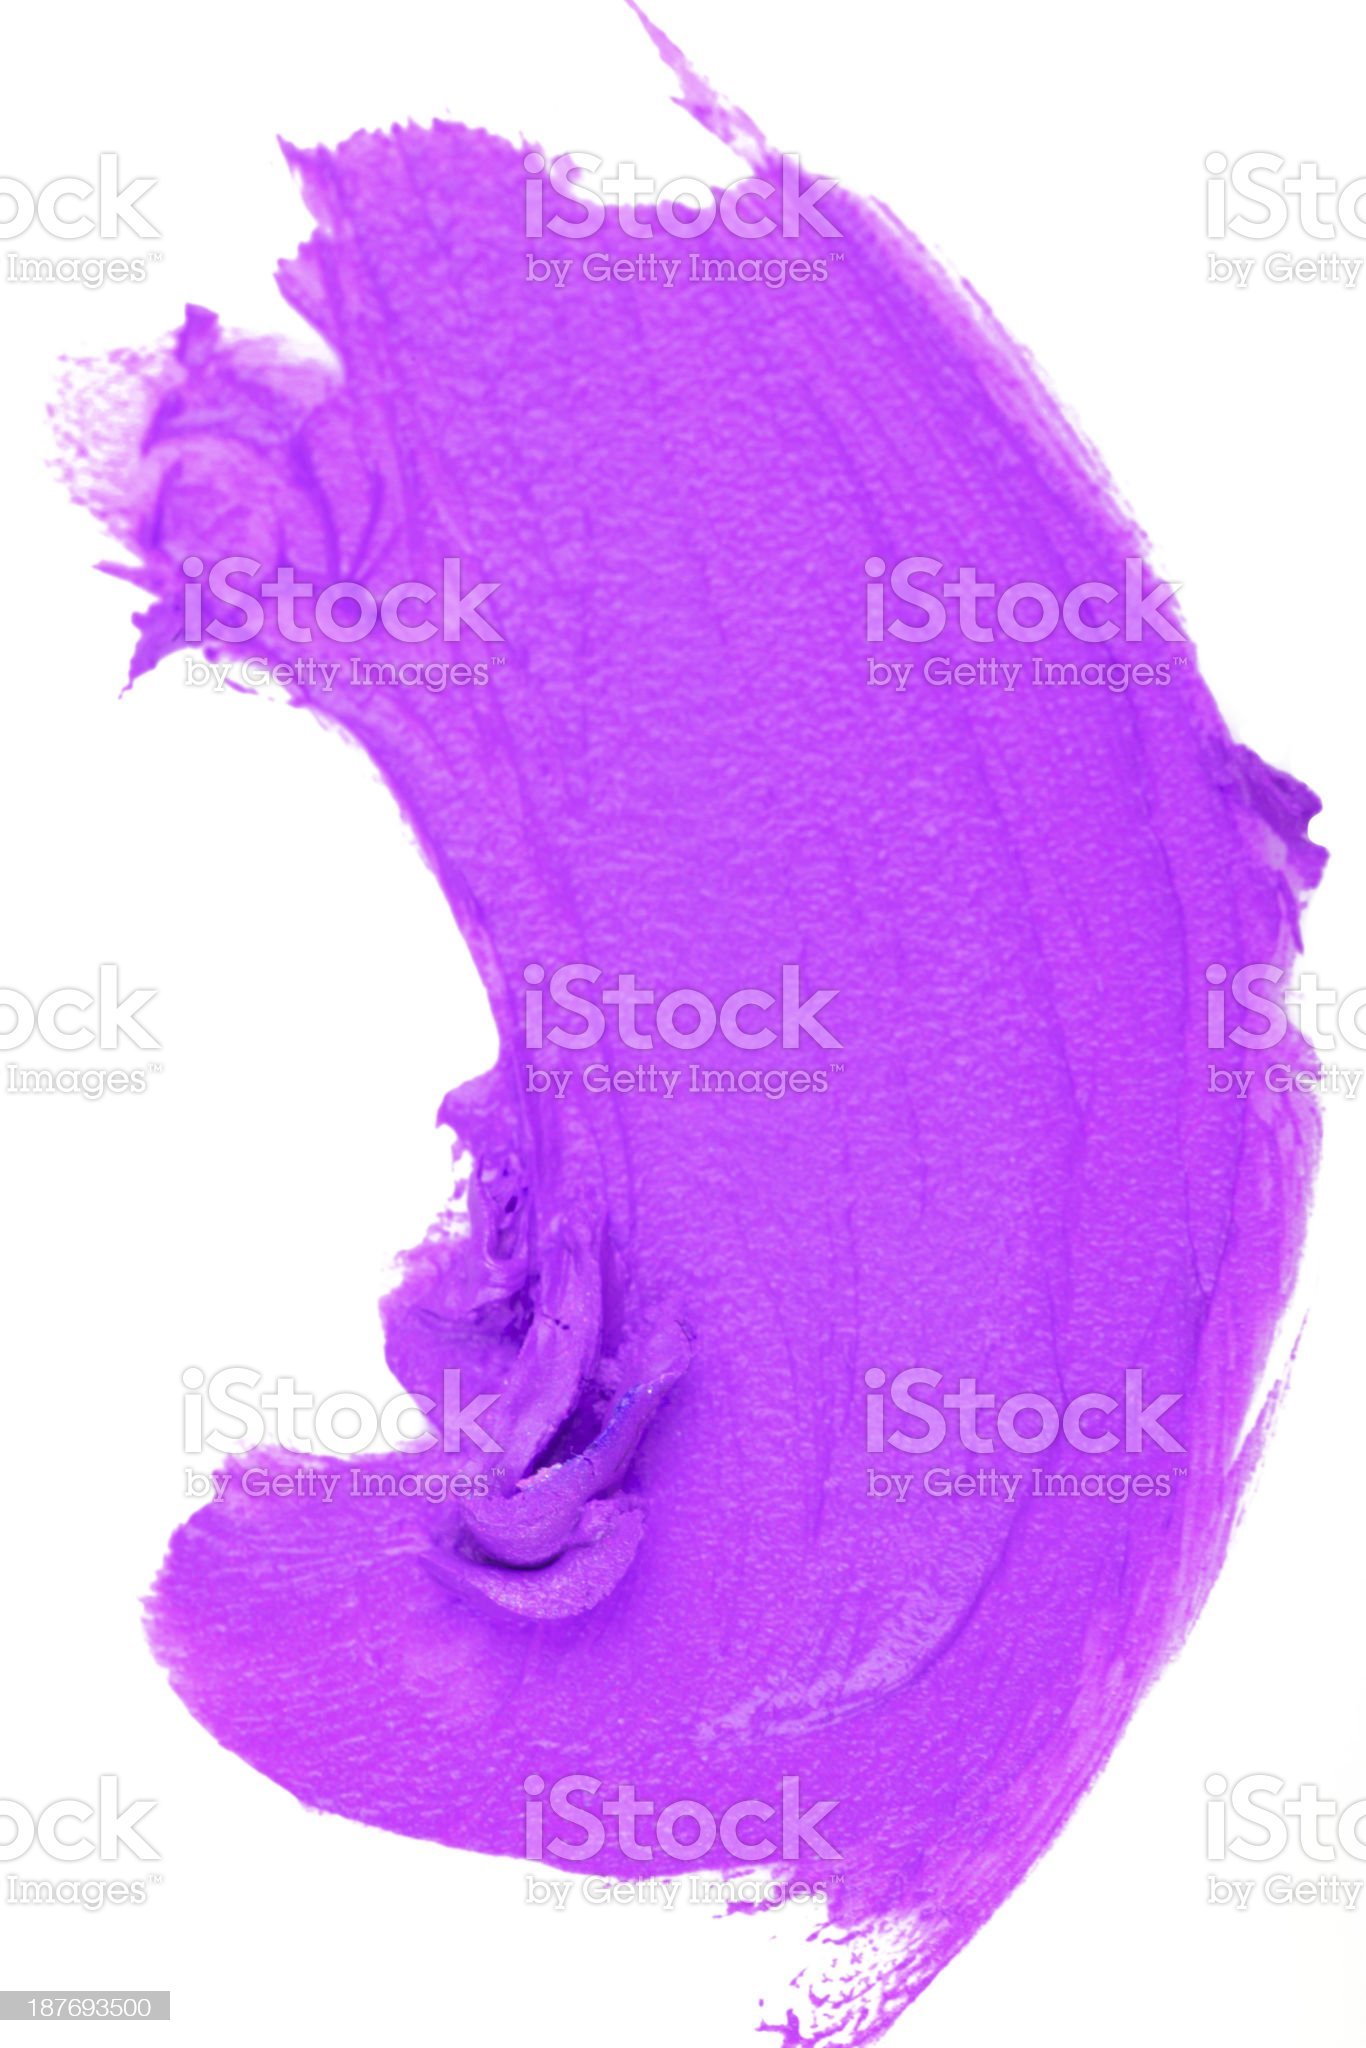 Smudged lip gloss royalty-free stock photo